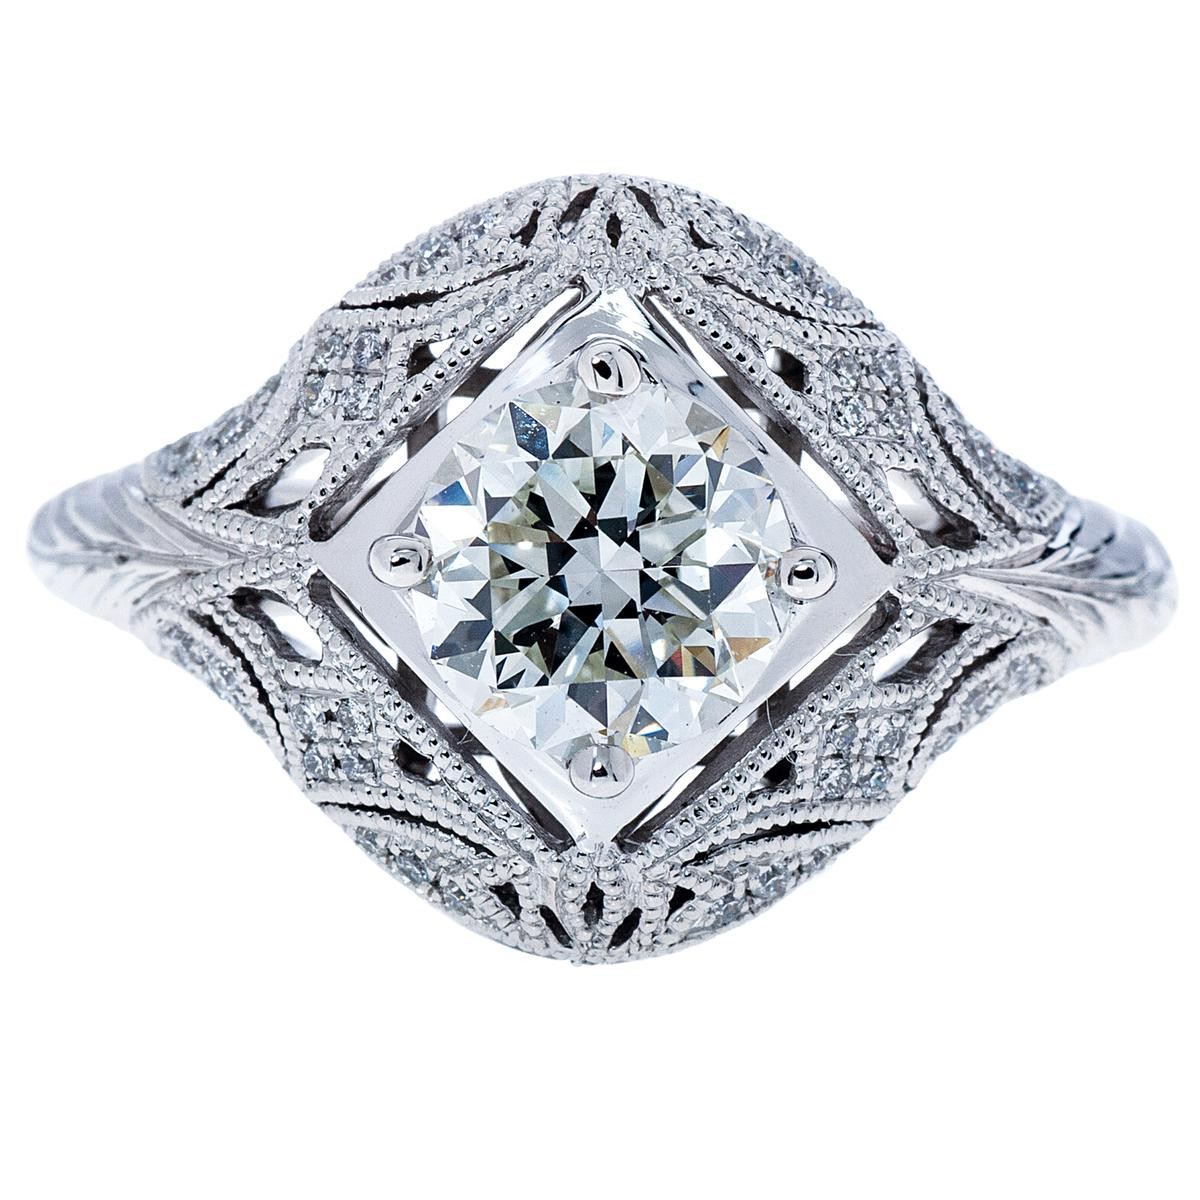 Venetti 1.20 CT Diamond Filigree Engagement Ring